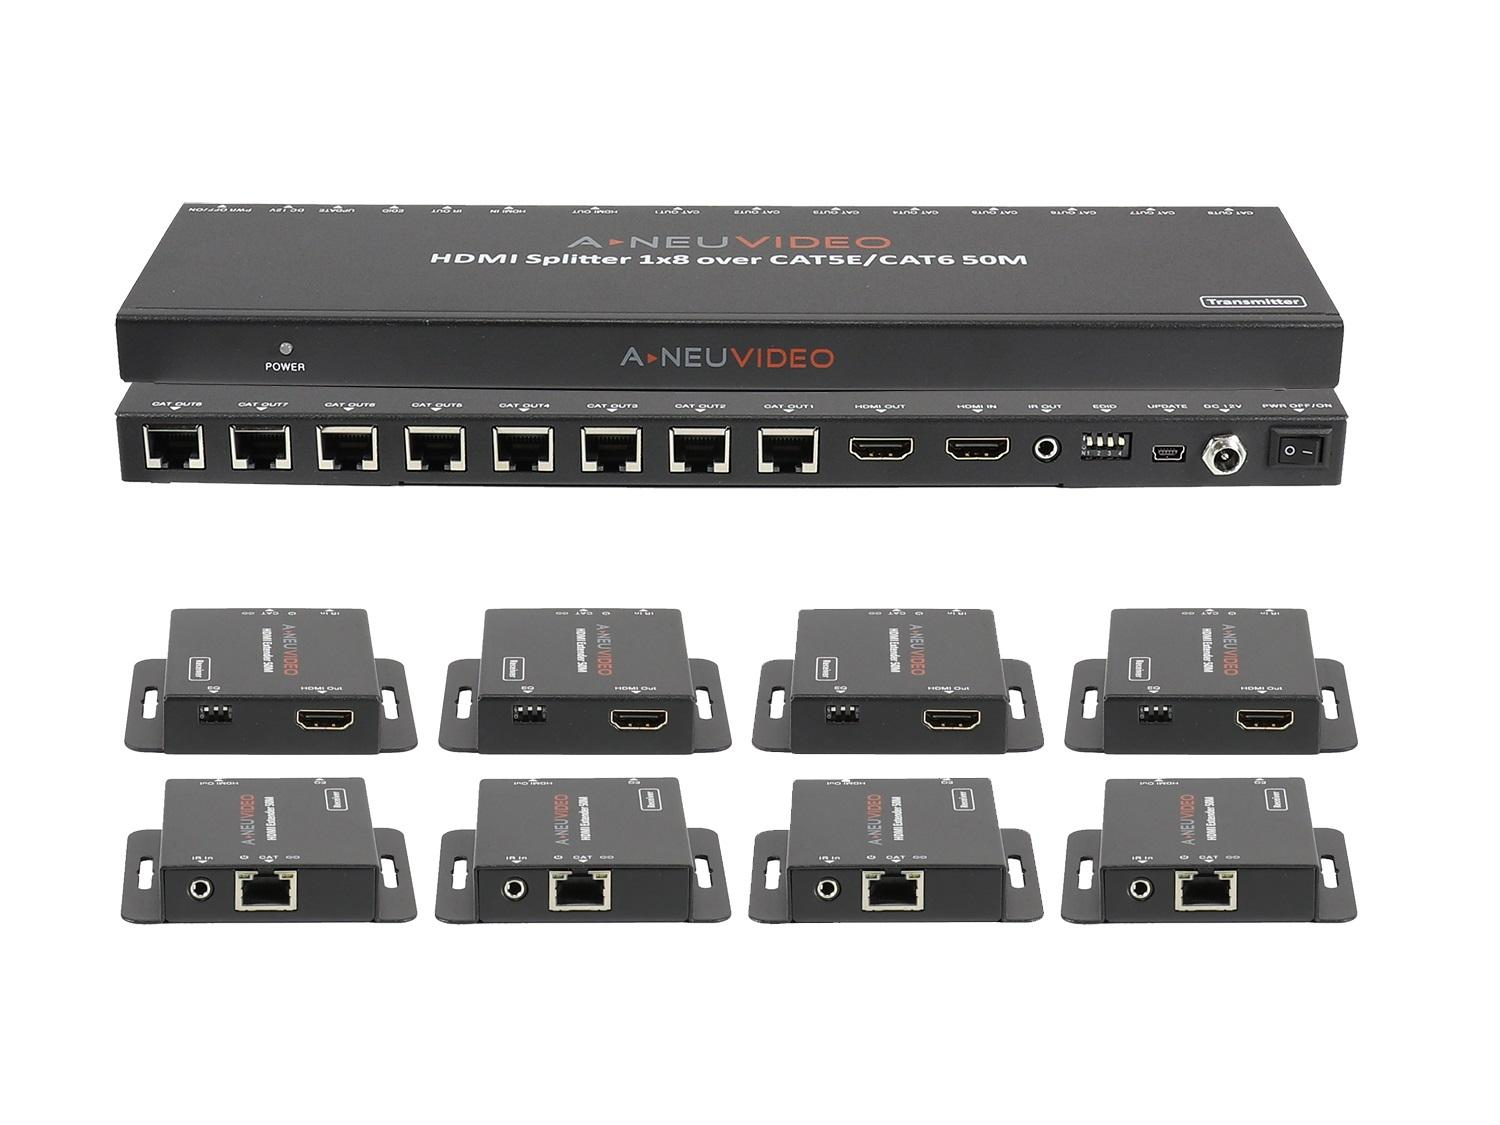 A-NeuVideo ANI-0108POE-b 1x8 POE HDMI Splitter Extender 150ft/45m over CAT5e/6 with 8x Receivers